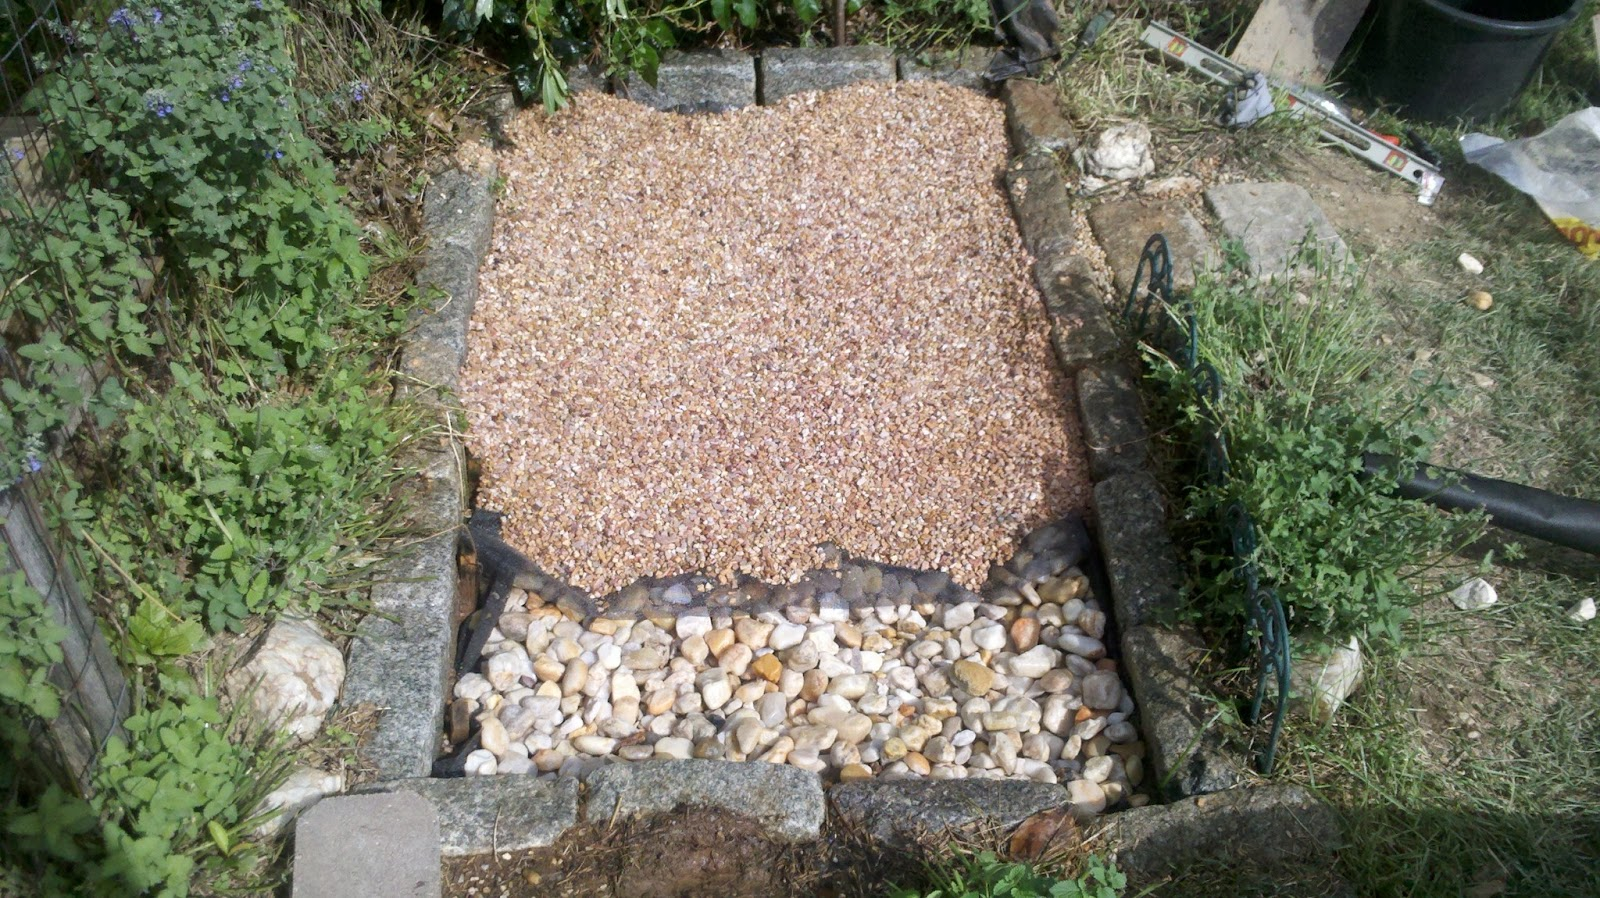 Pea Gravel Backyard For Dogs : Pea Gravel with mesh coving river rock